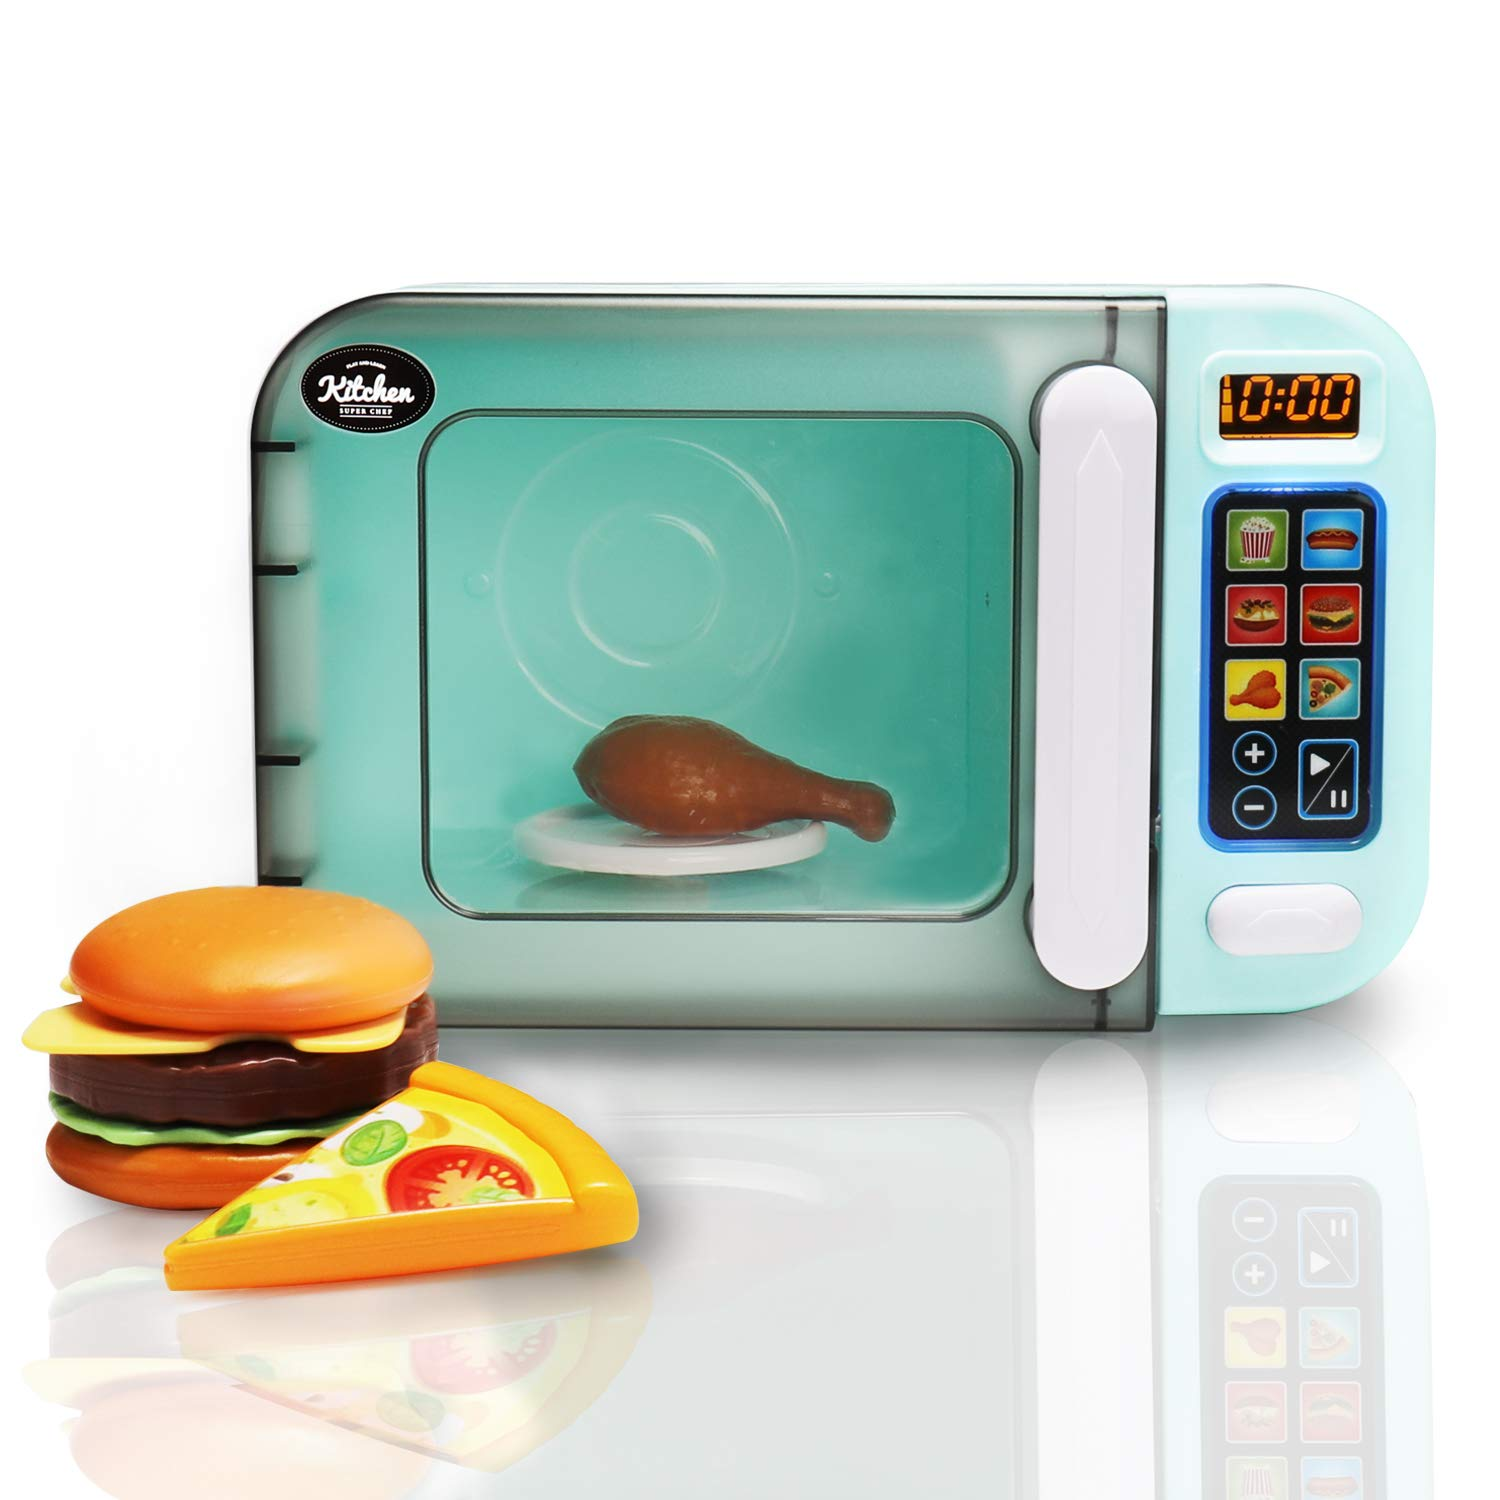 infunbebe Jeeves Jr. Kids Microwave Oven Toy Electronic Pretend Microwave Play Just Like Home My First Kitchen Appliance for Toddlers